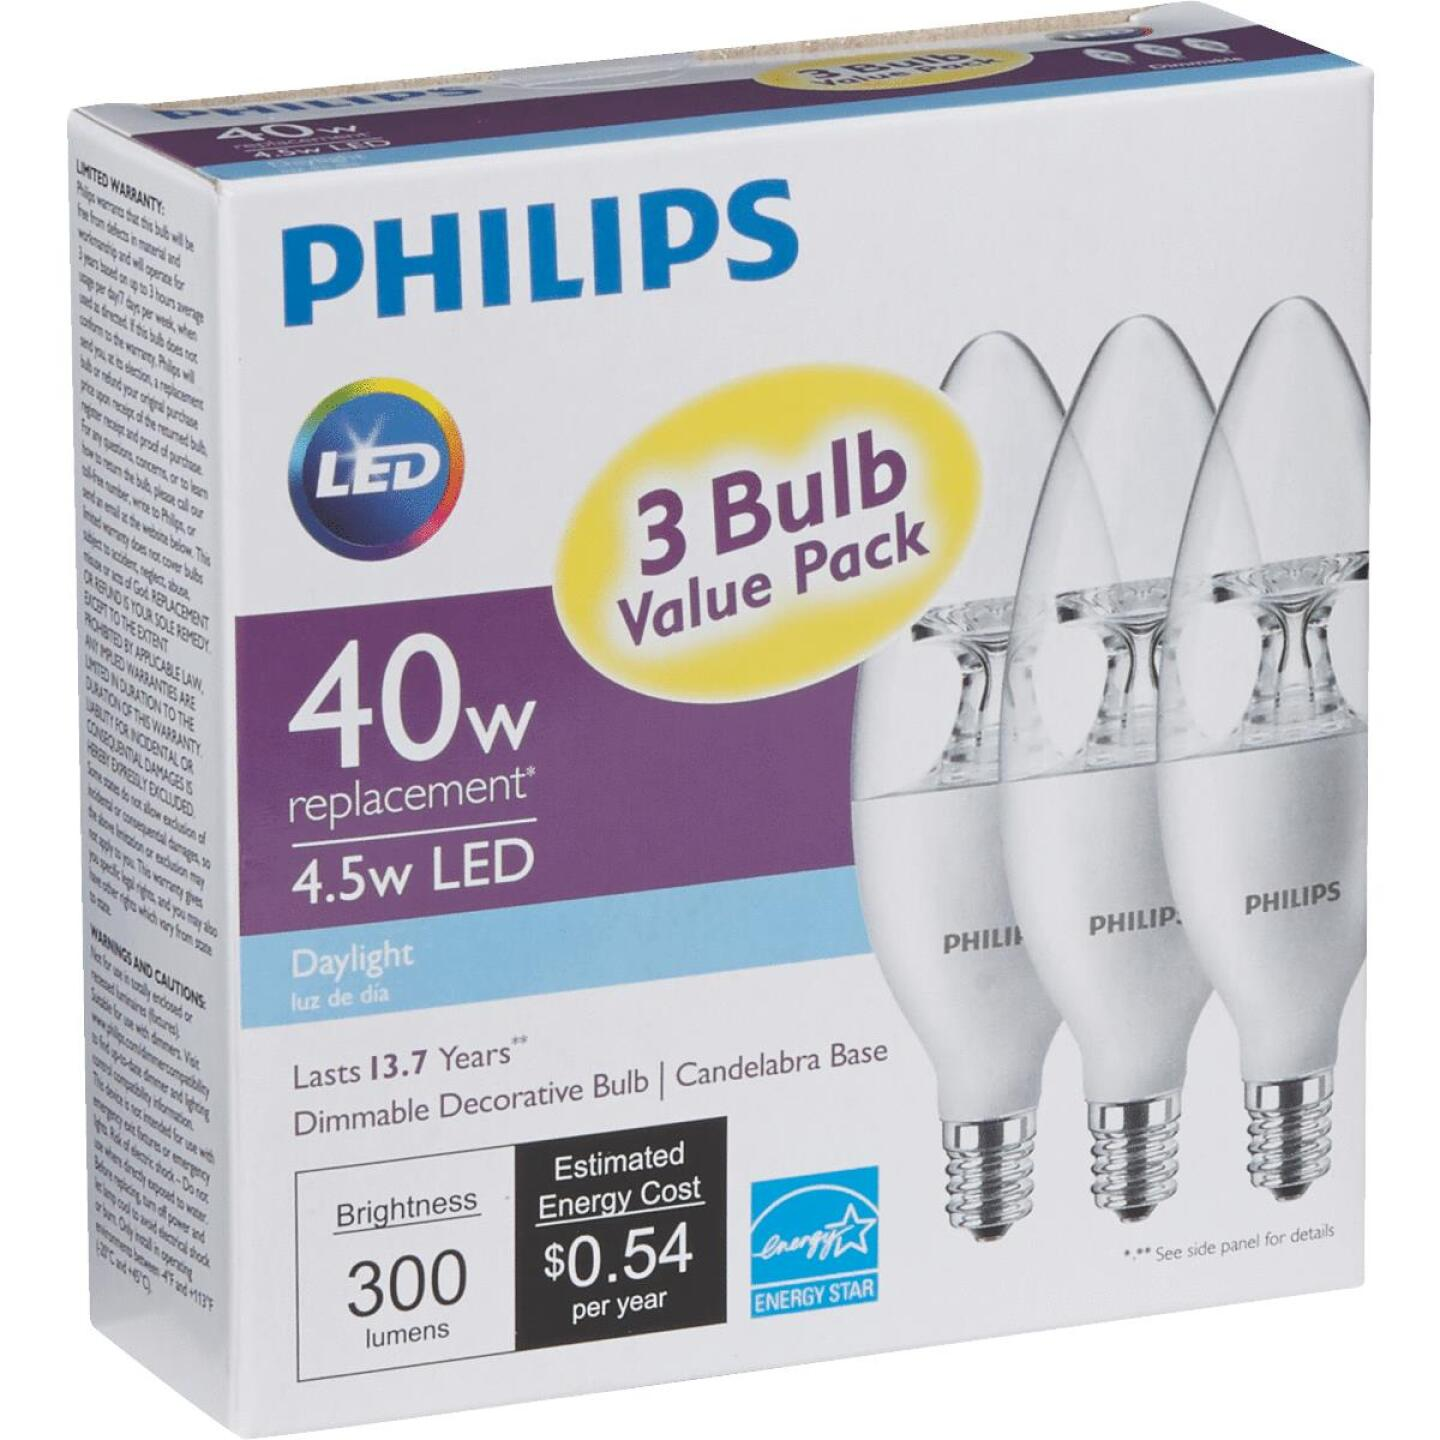 Philips 40W Equivalent Daylight B11 Candelabra Dimmable LED Decorative Light Bulb (3-Pack) Image 3